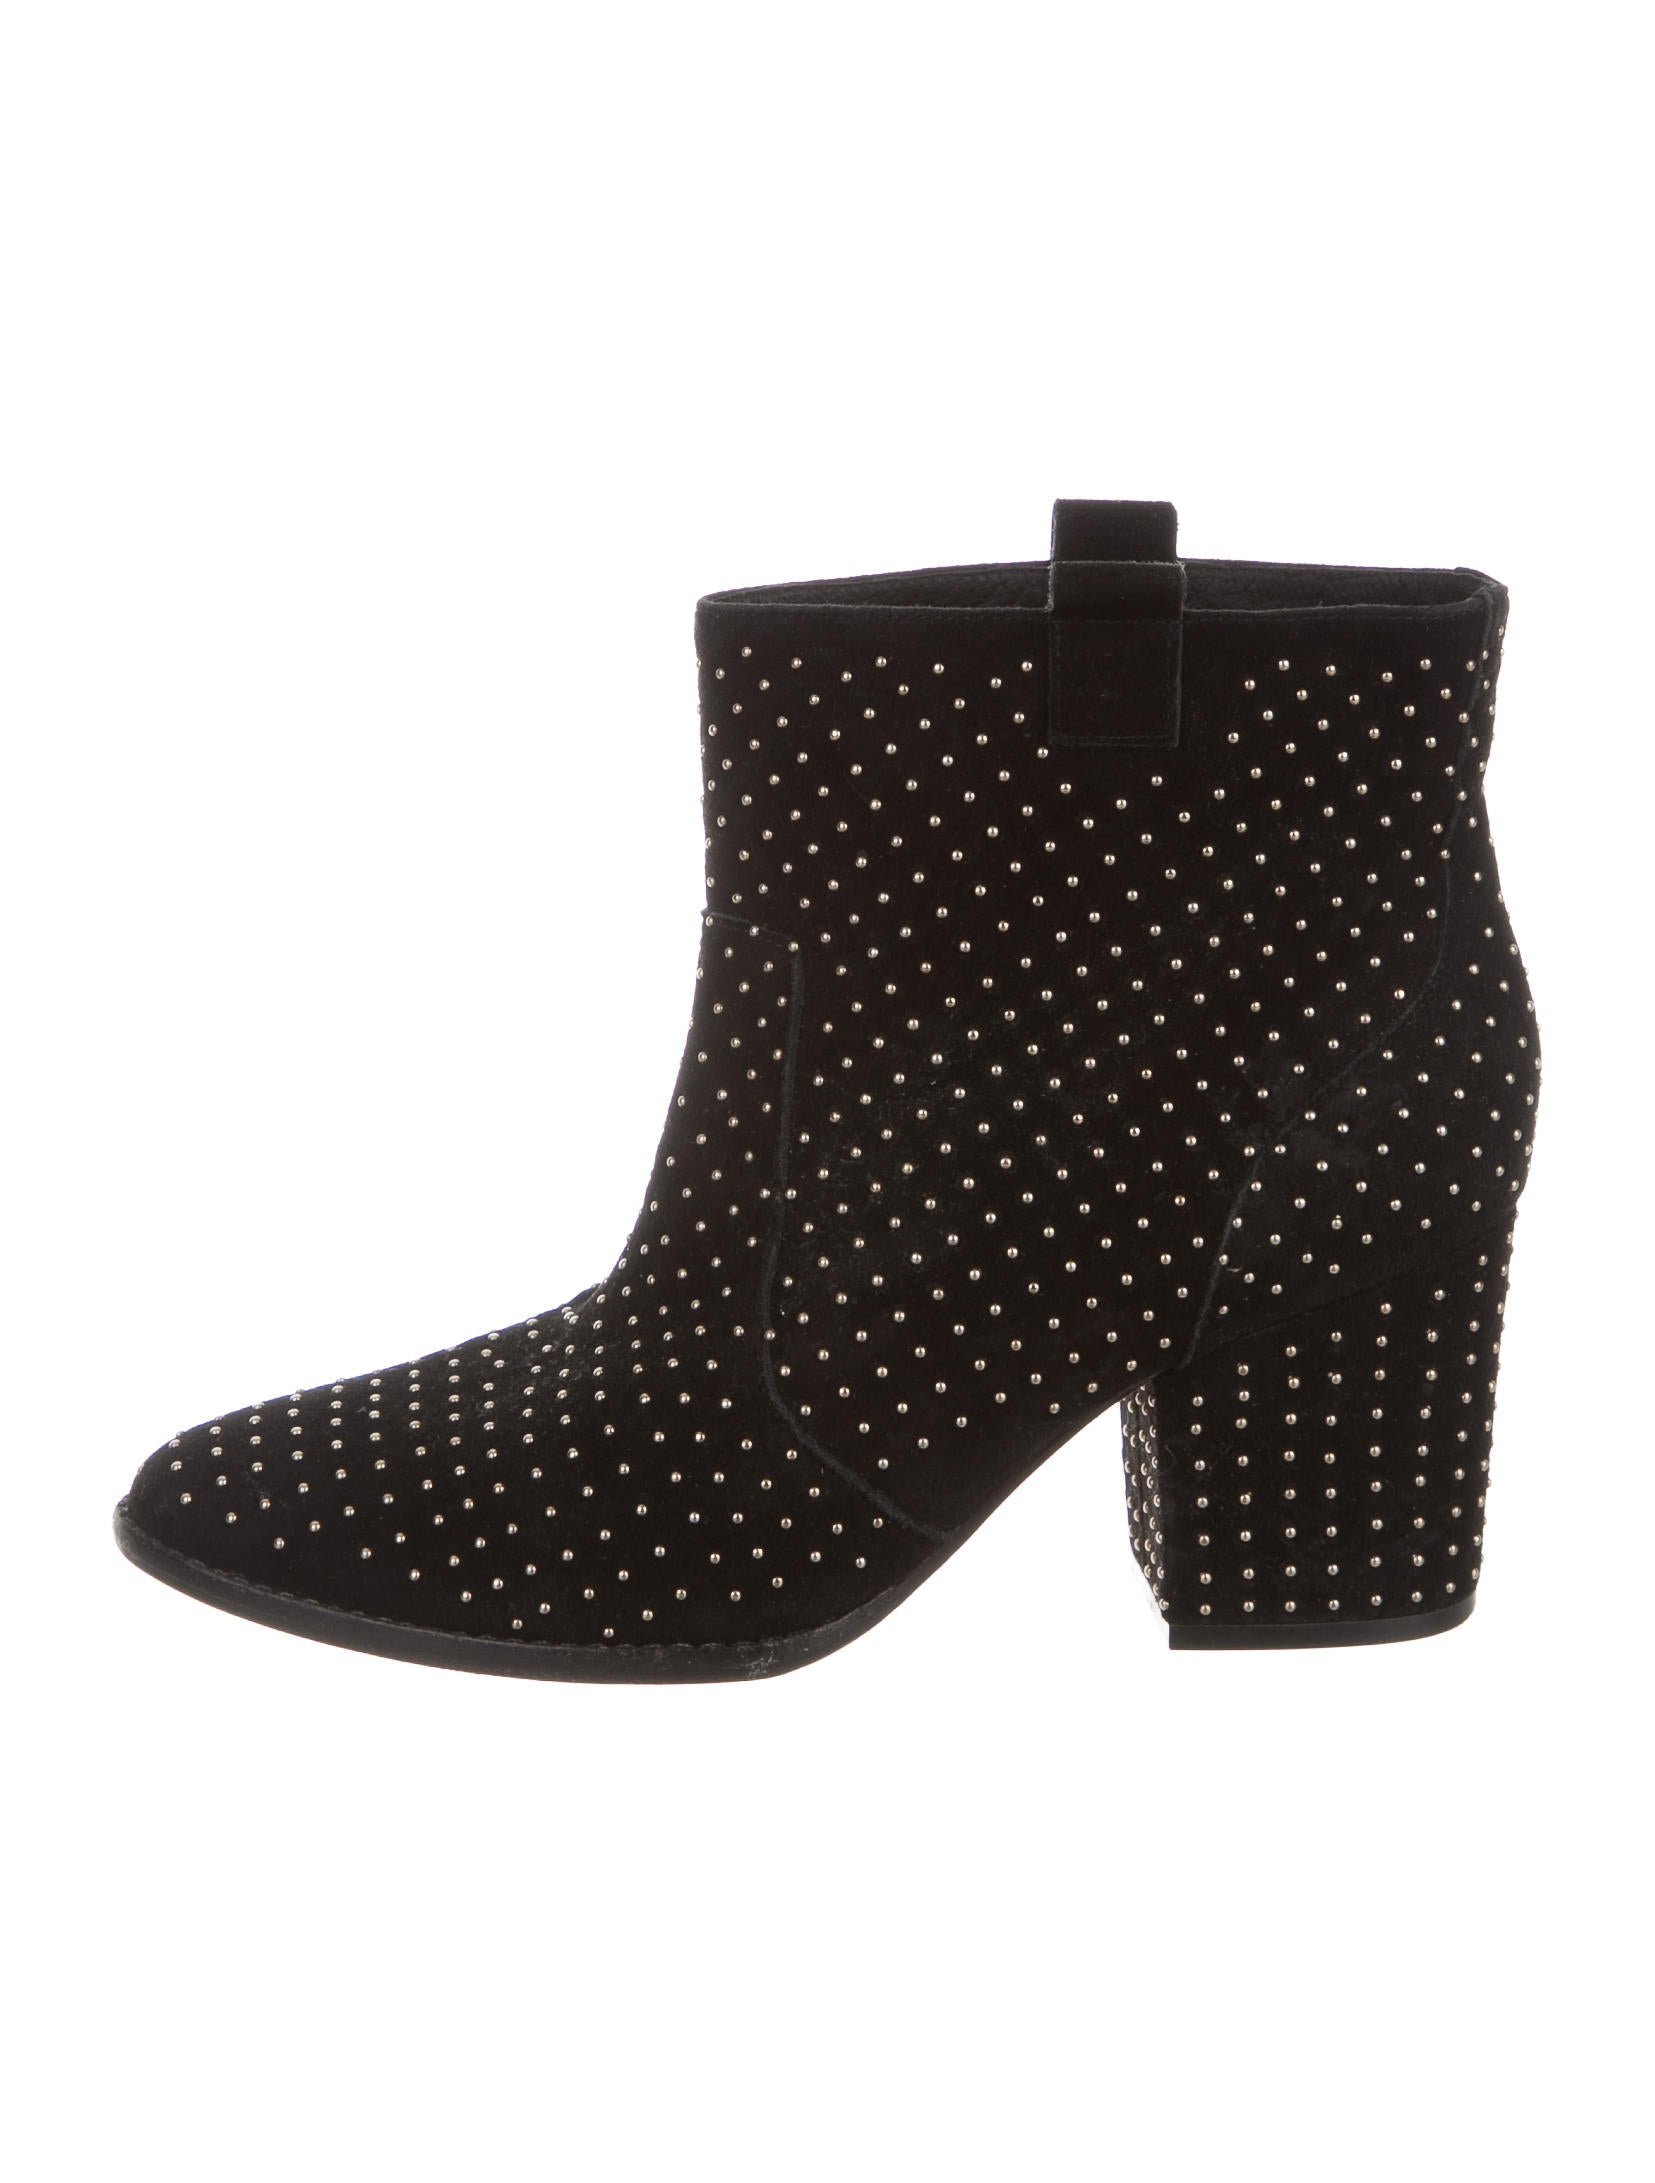 minkoff suede studded ankle boots shoes